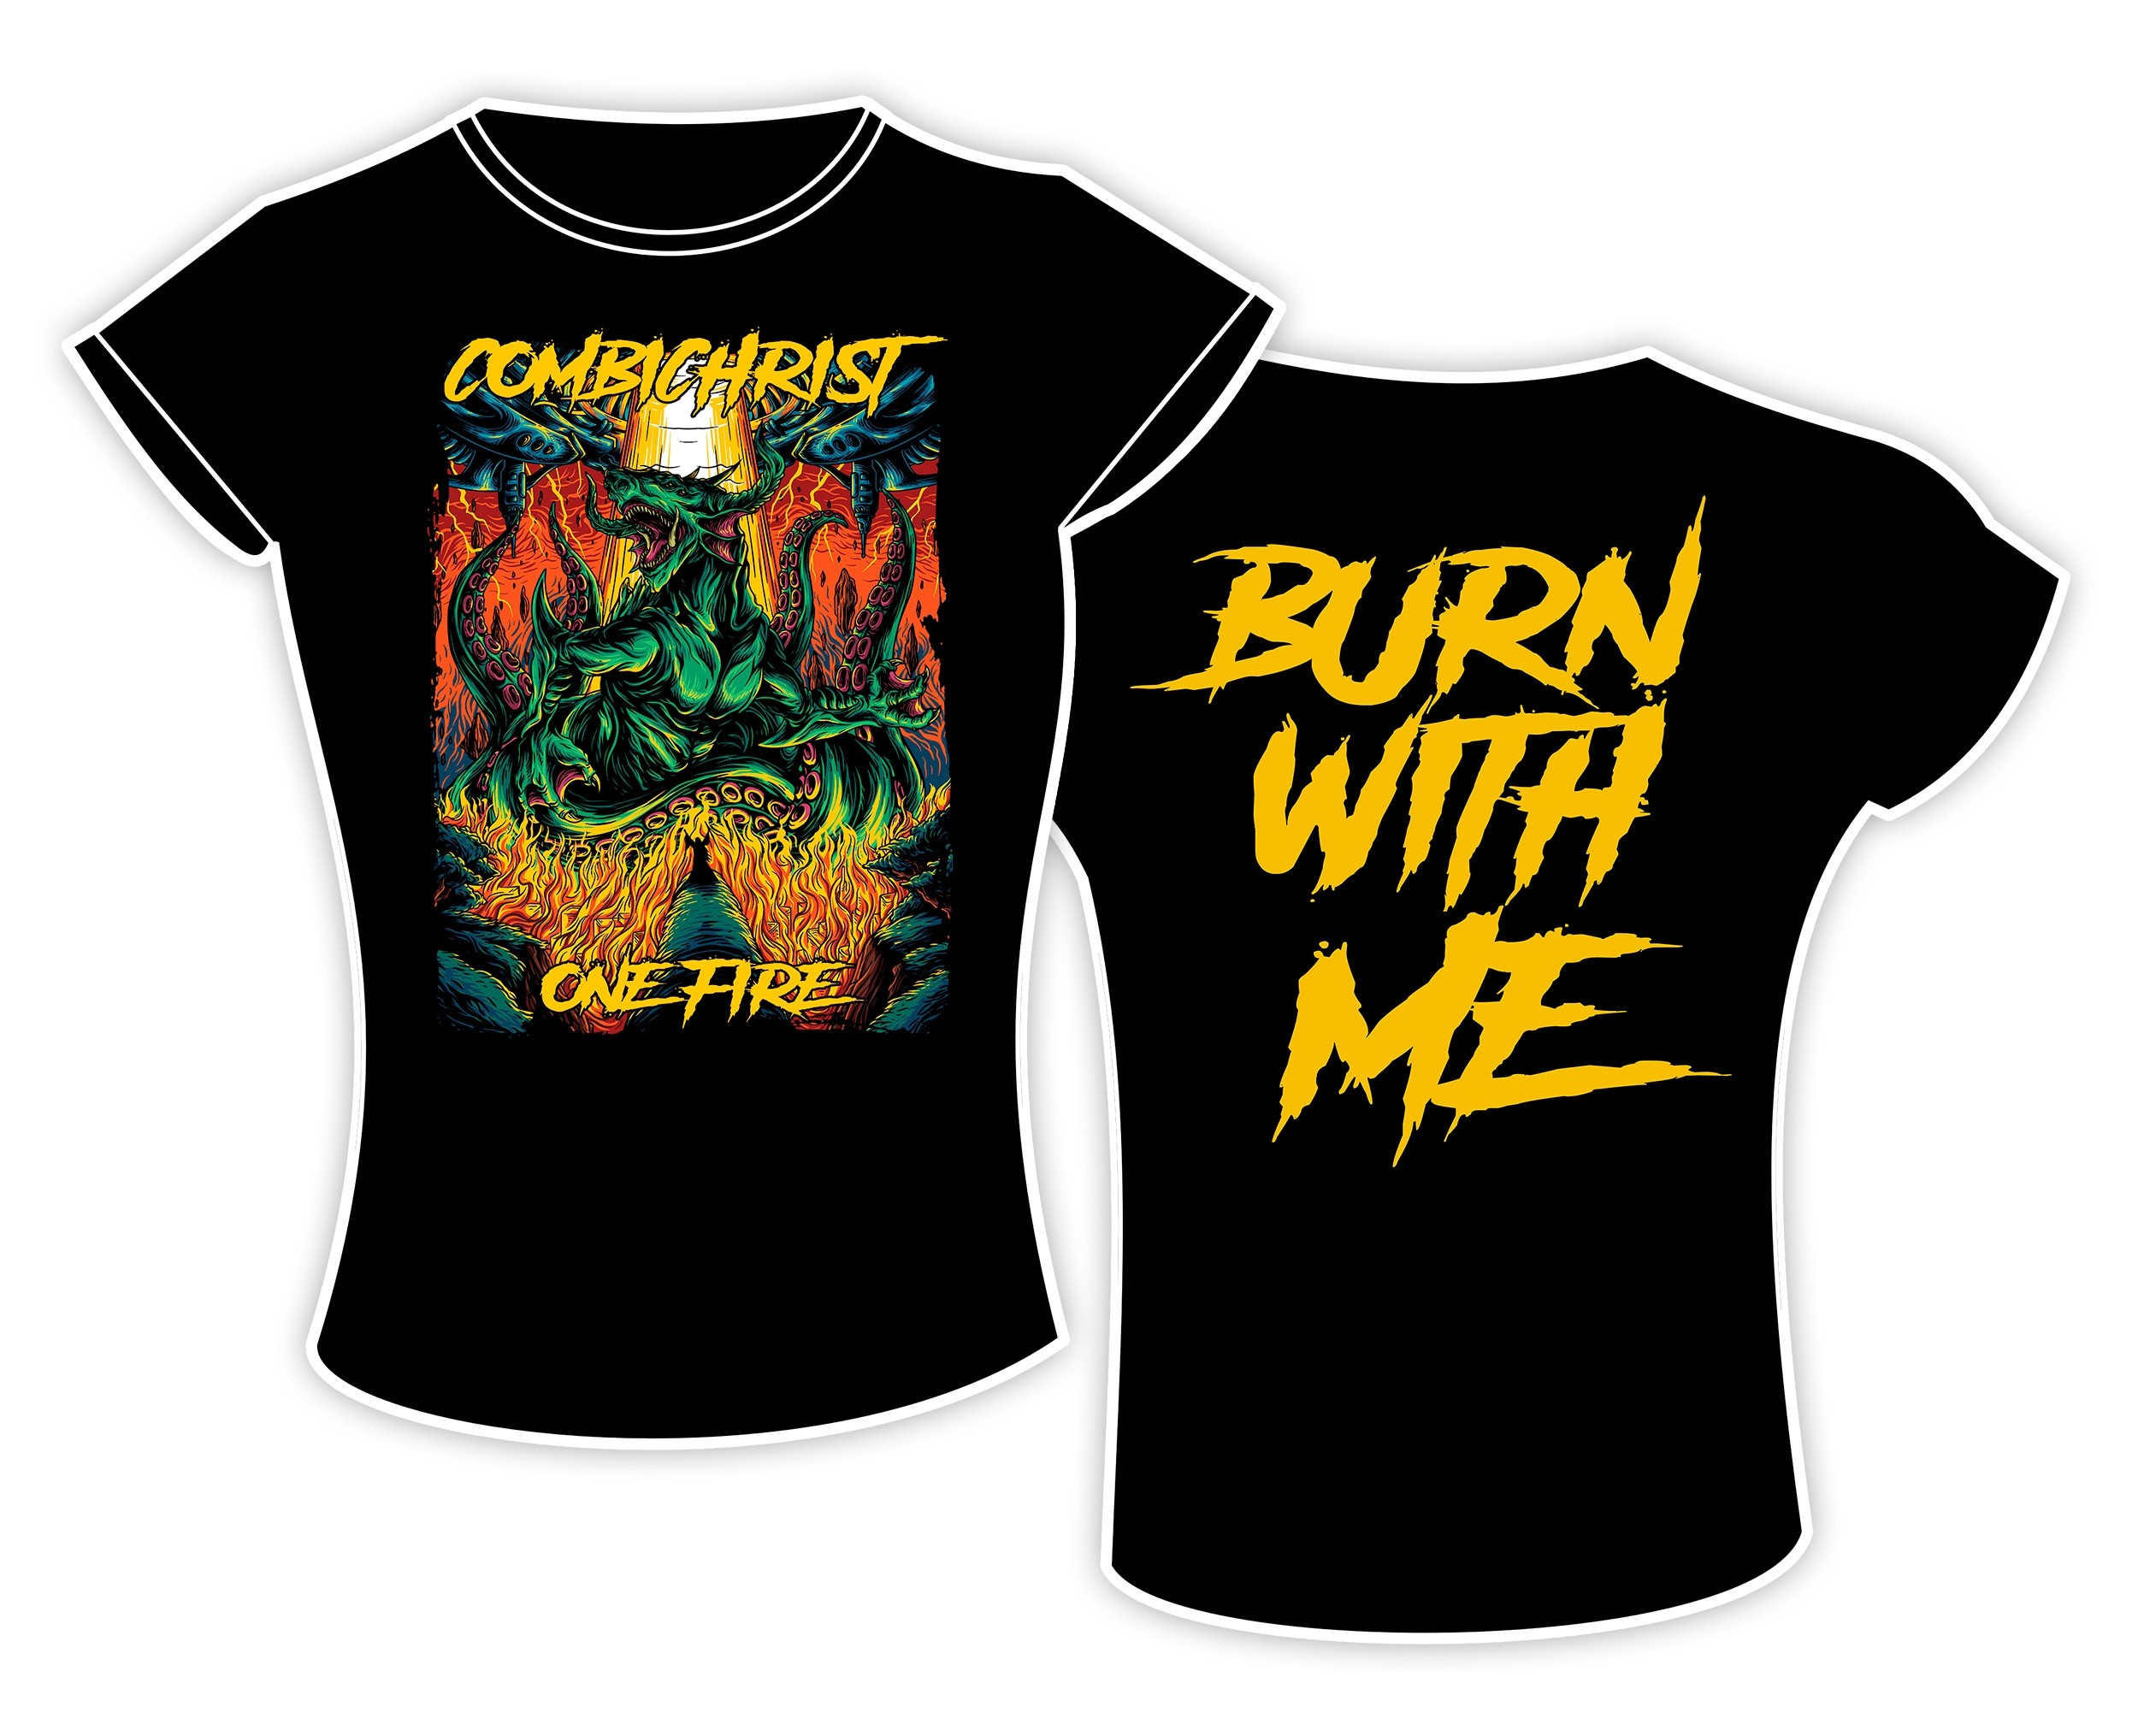 Combichrist - Burn with me / One Fire - Girlie